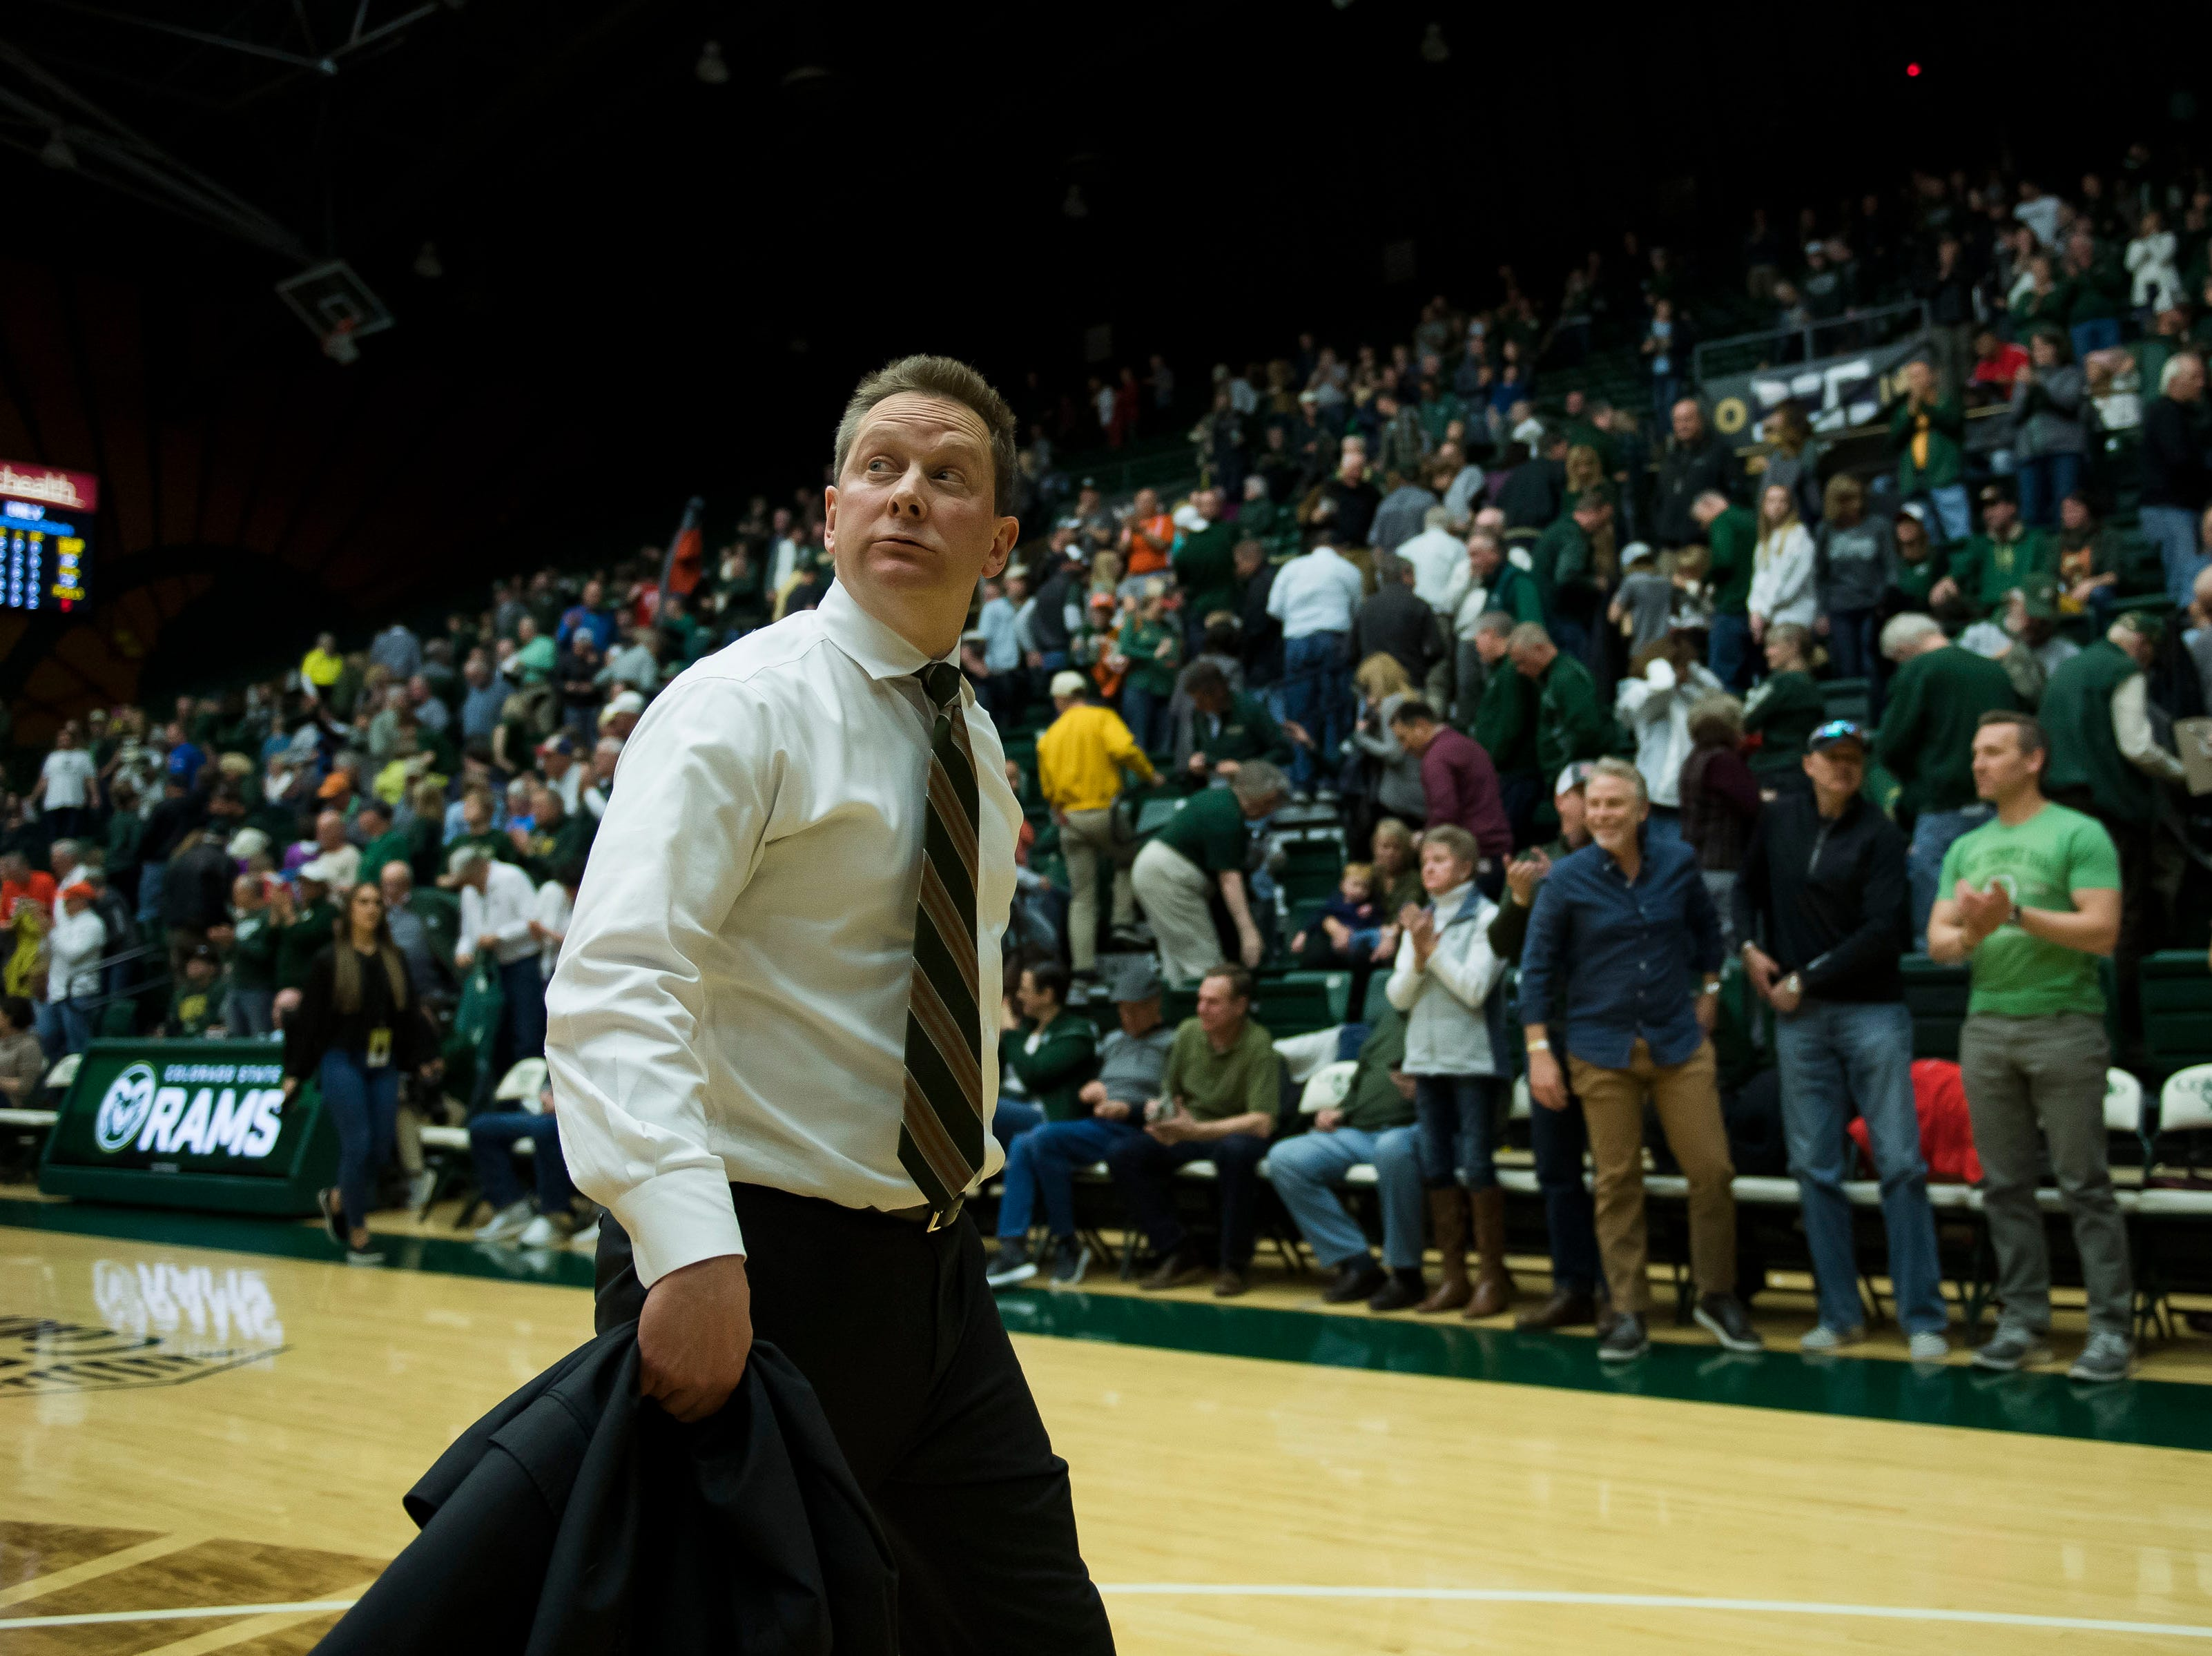 Colorado State University head coach Niko Medved walks off court after a 65-60 loss to University of Nevada, Las Vegas on Saturday, March 9, 2019, at Moby Arena in Fort Collins, Colo.